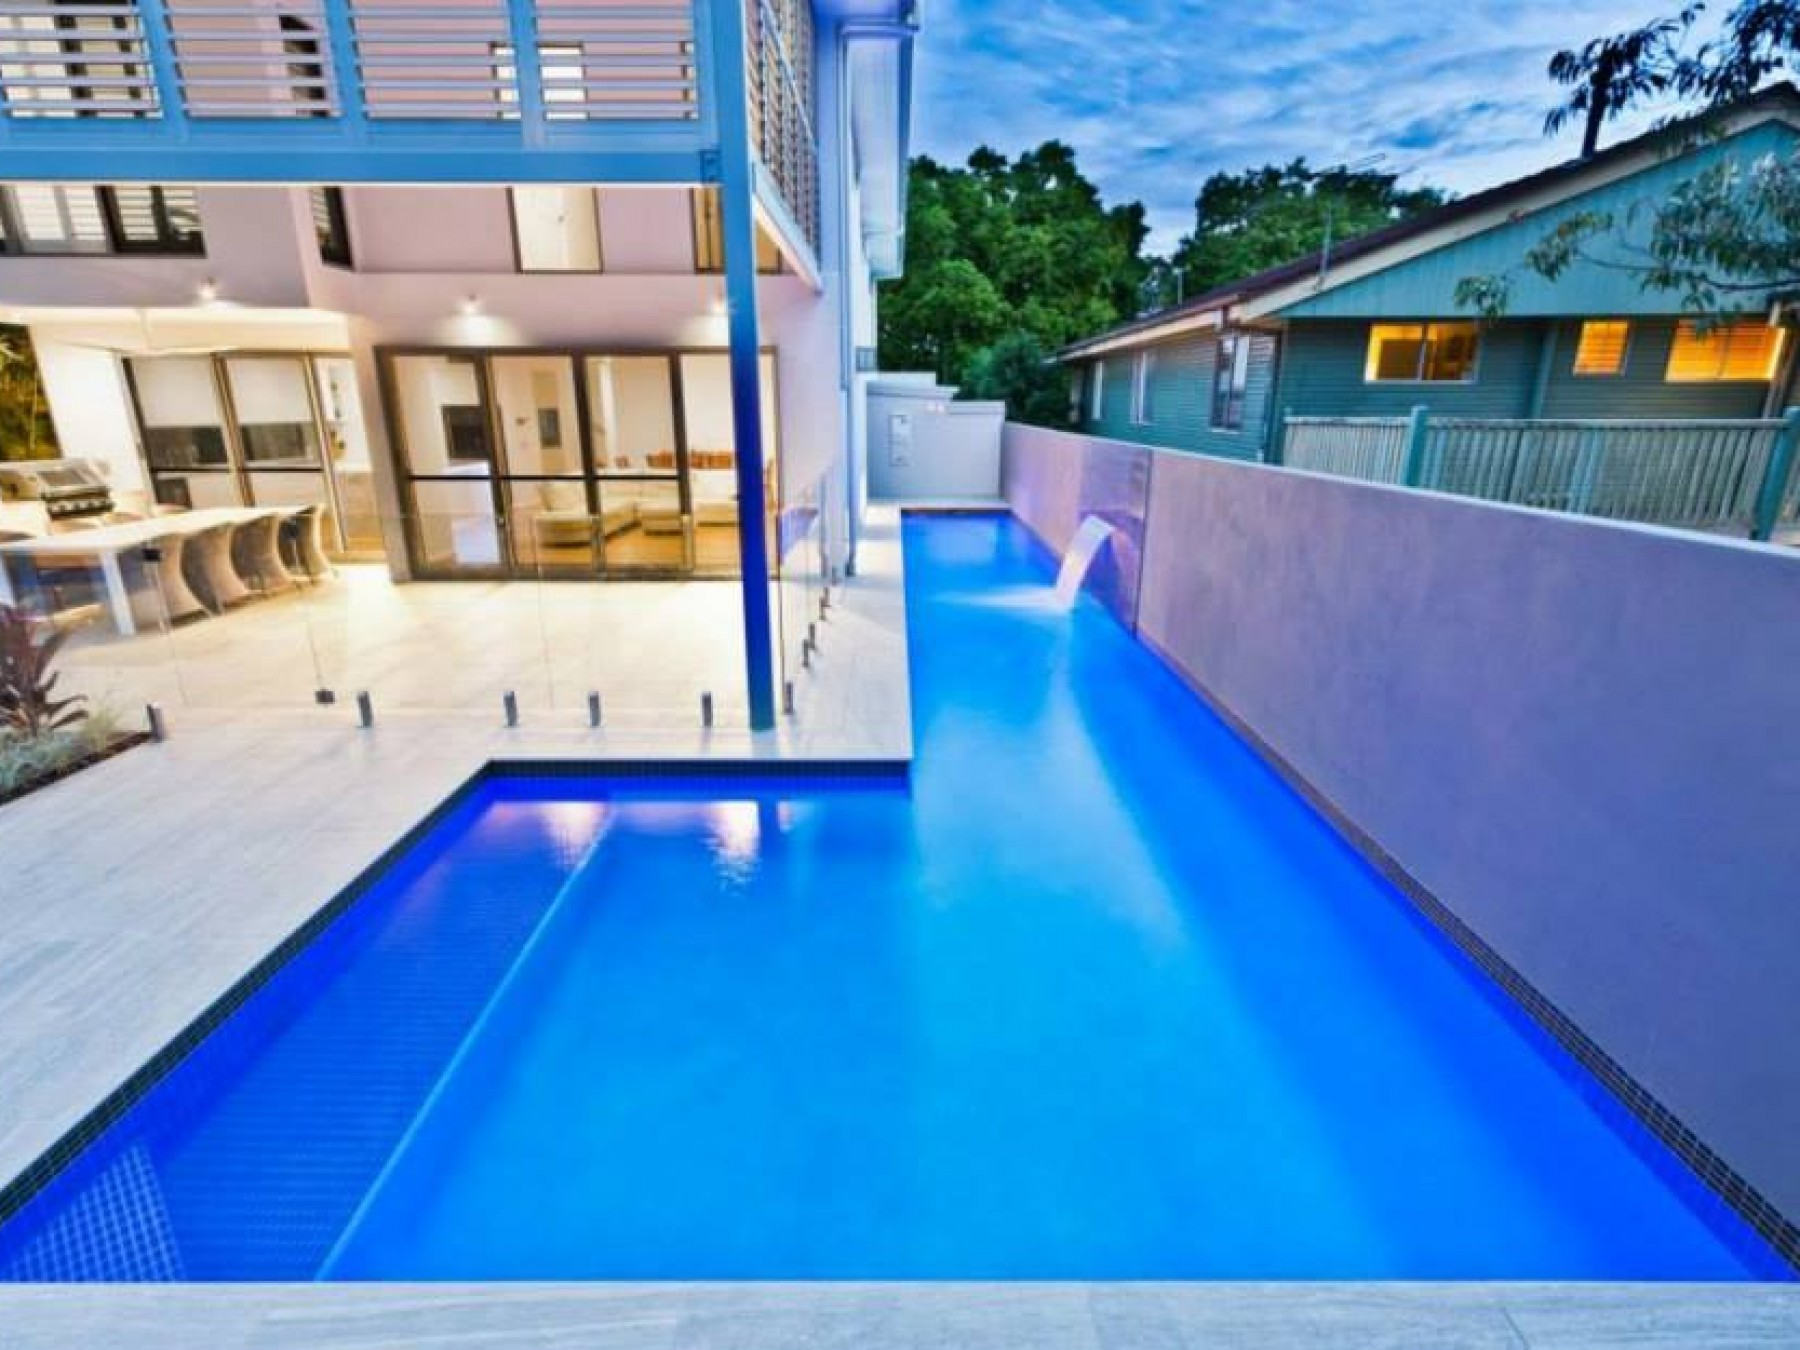 Selling or Leasing a pool in Jollys Lookout